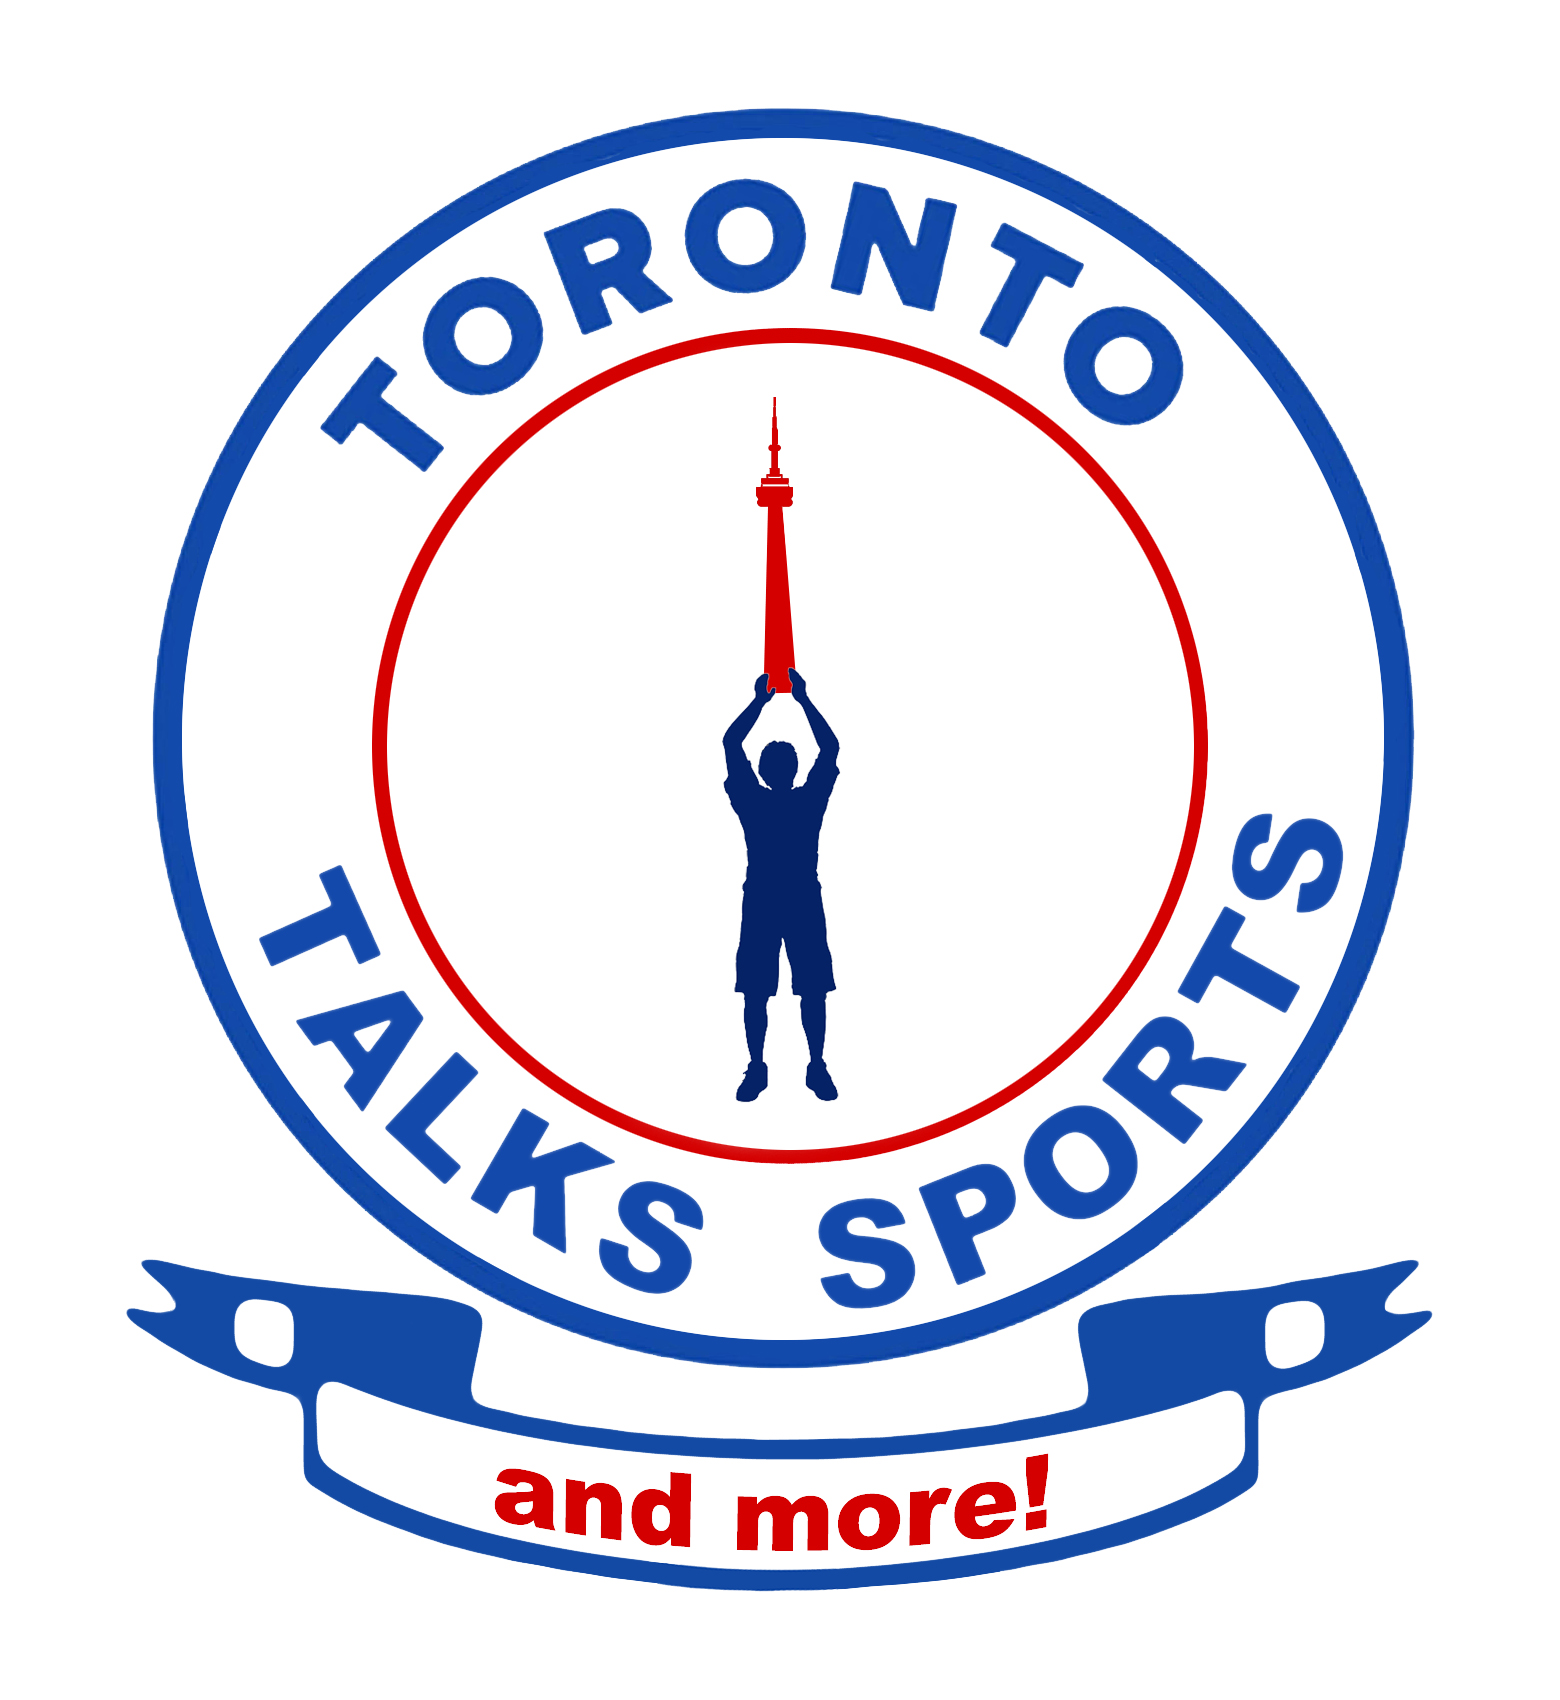 Toronto Talks Sports & More